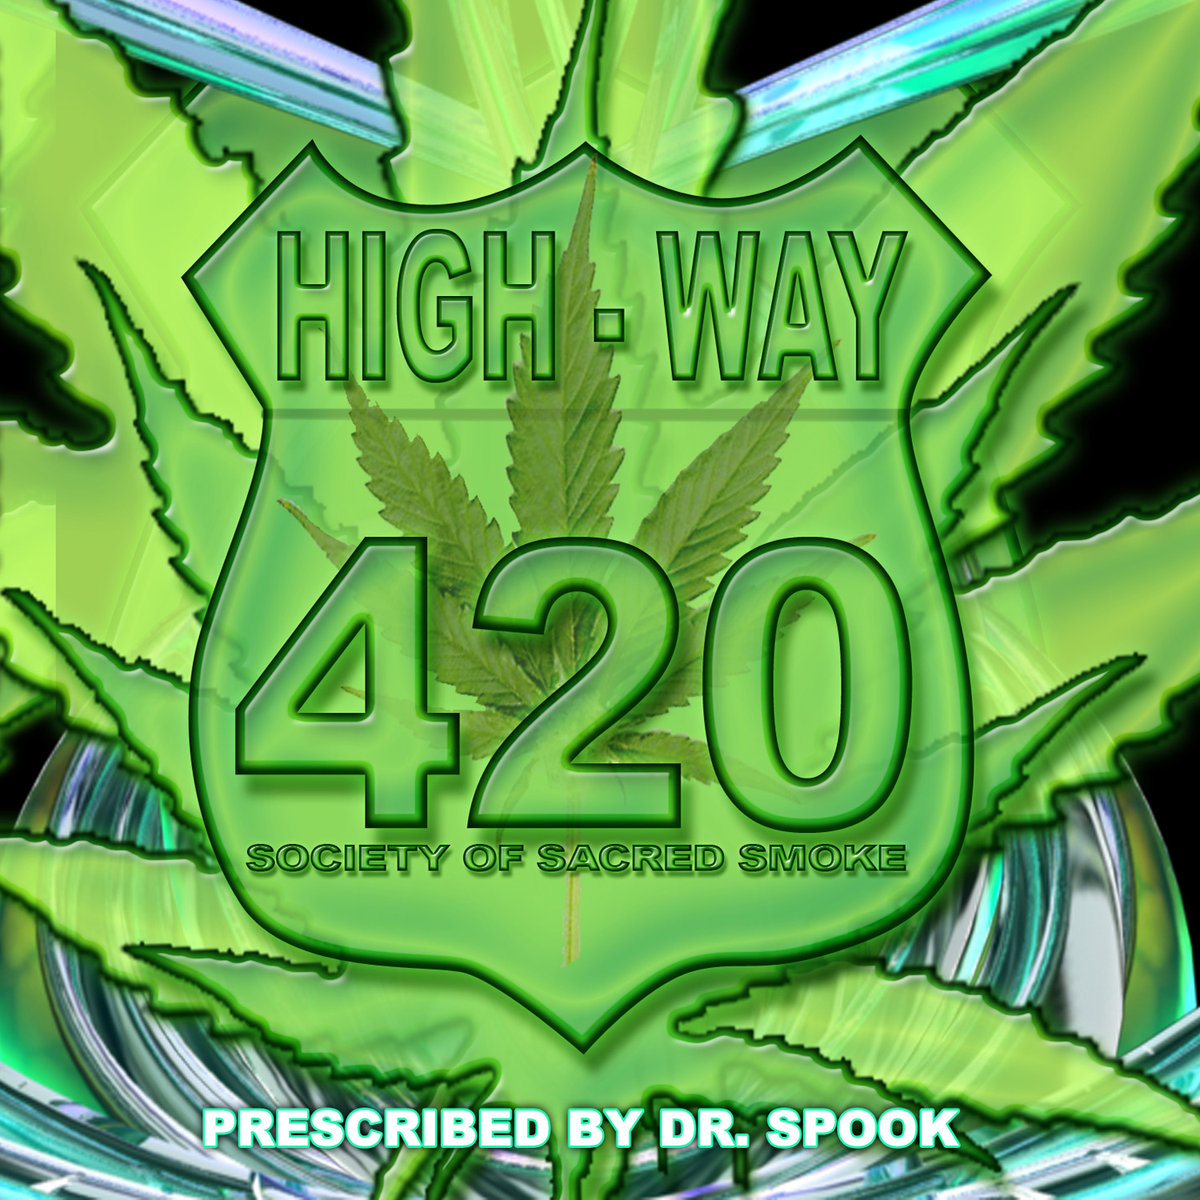 Clone - Green Fantasy @ 'Various Artists - High-Way 420: Society Of Sacred Smoke (Prescribed by Dr. Spook)' album (electronic, goa)